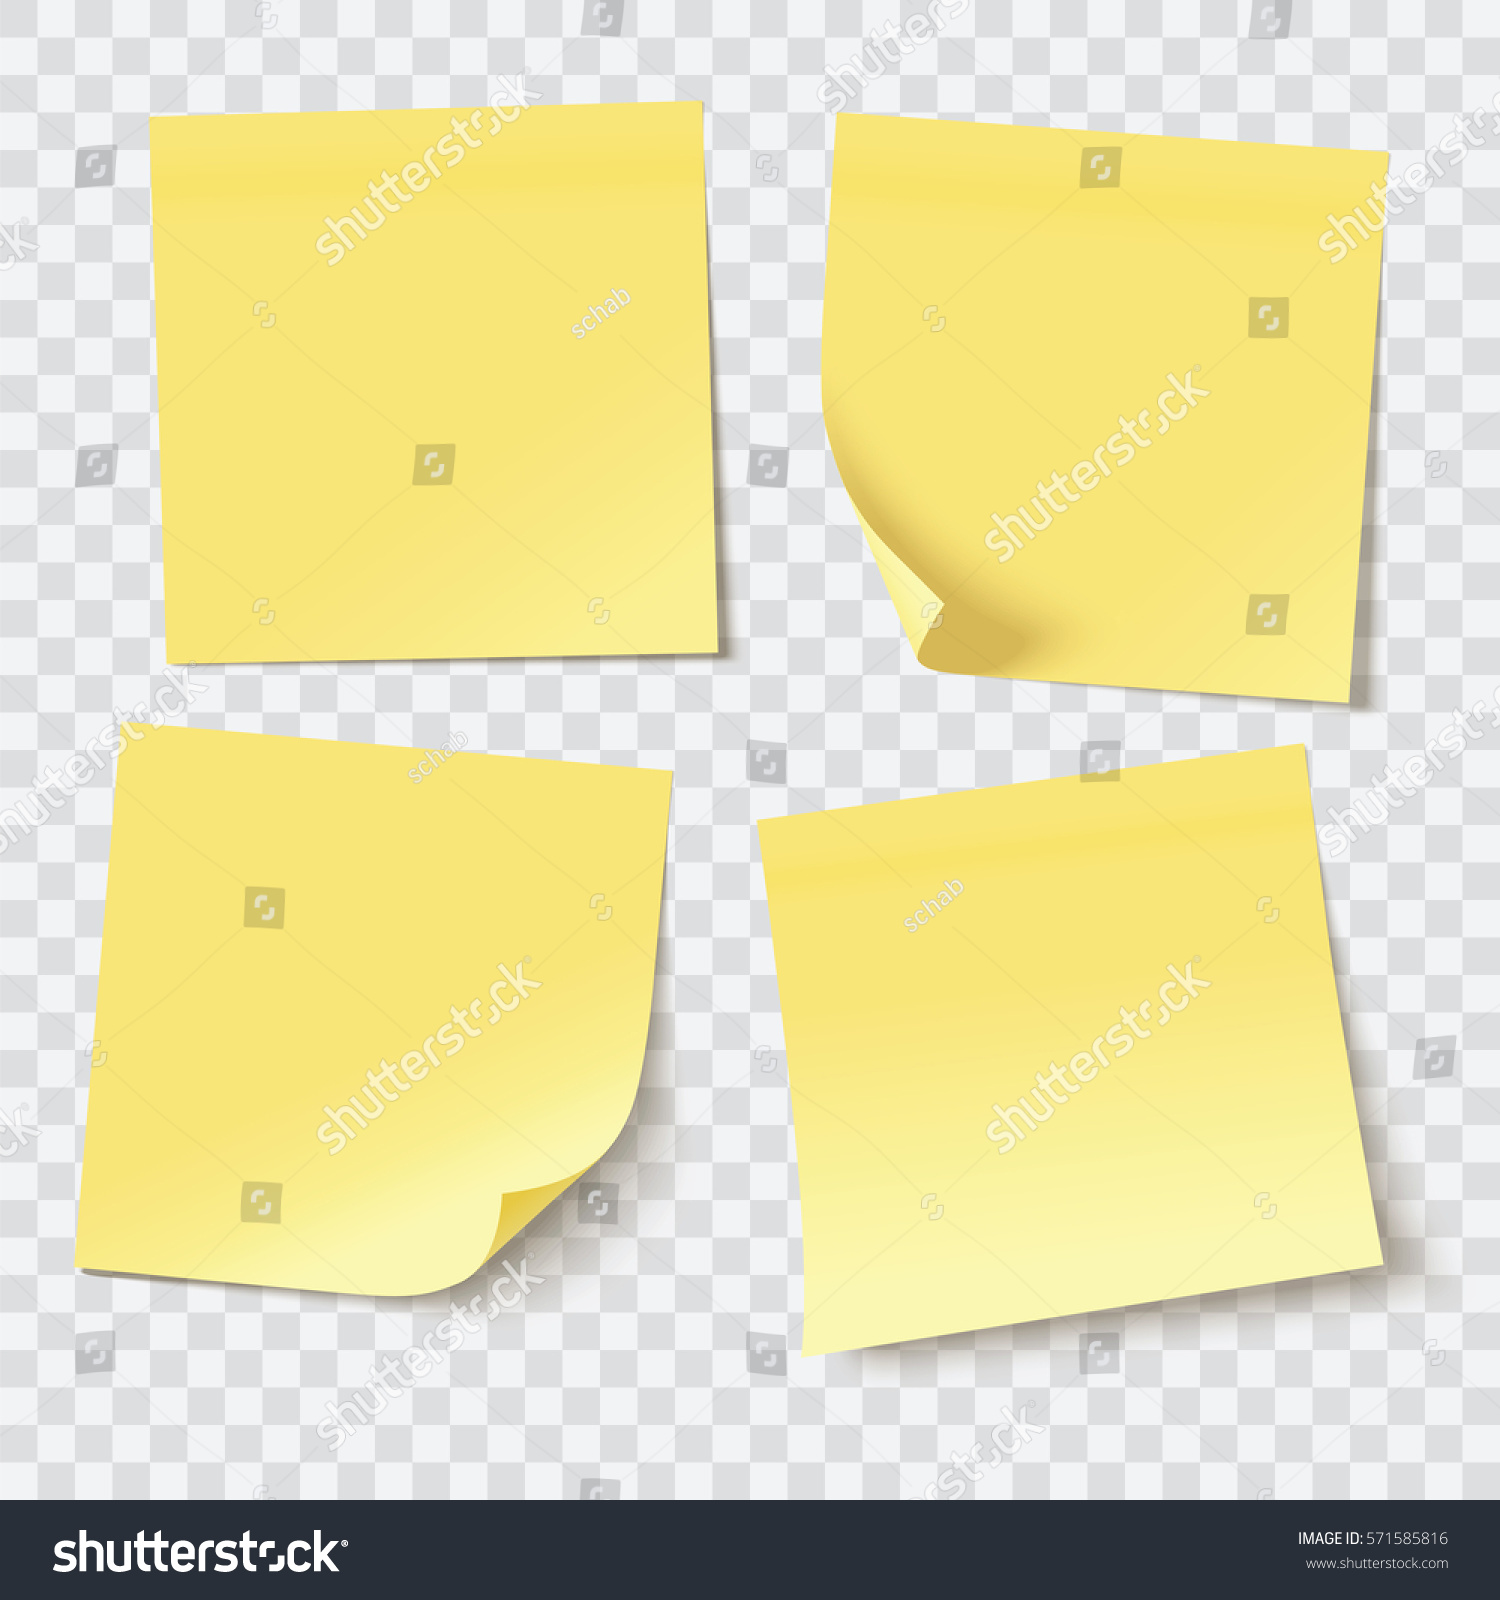 Free vector graphic sticky note note info paper free image on - Yellow Sticky Notes Vector Illustration